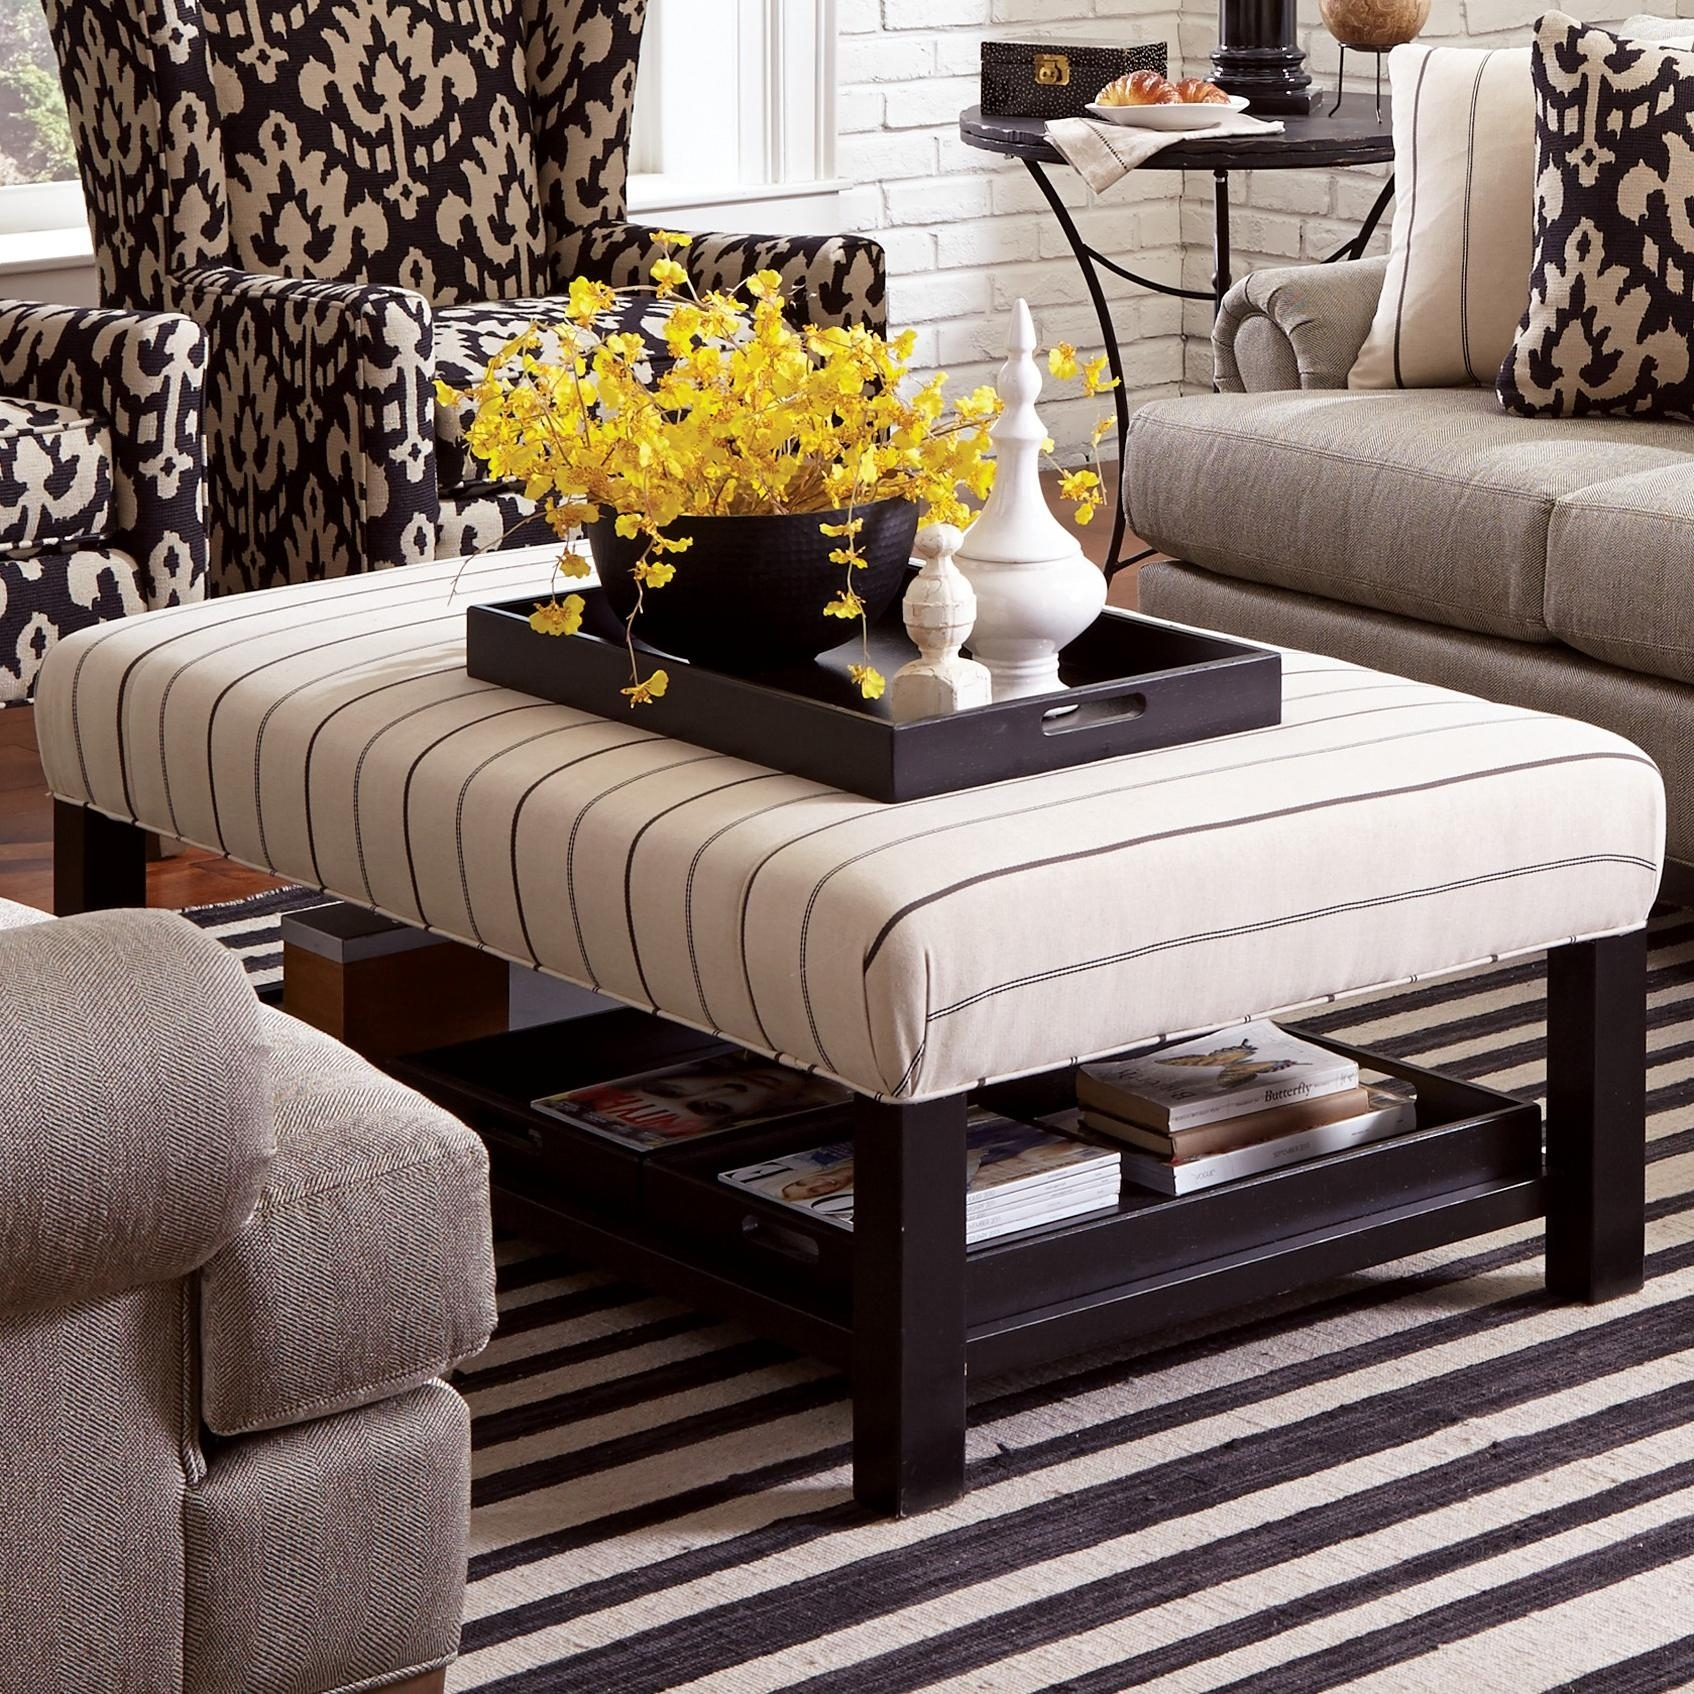 Uncategorized : Ottoman Coffee Table Tray Ideas Within Elegant For Ottomans With Tray (Image 9 of 10)